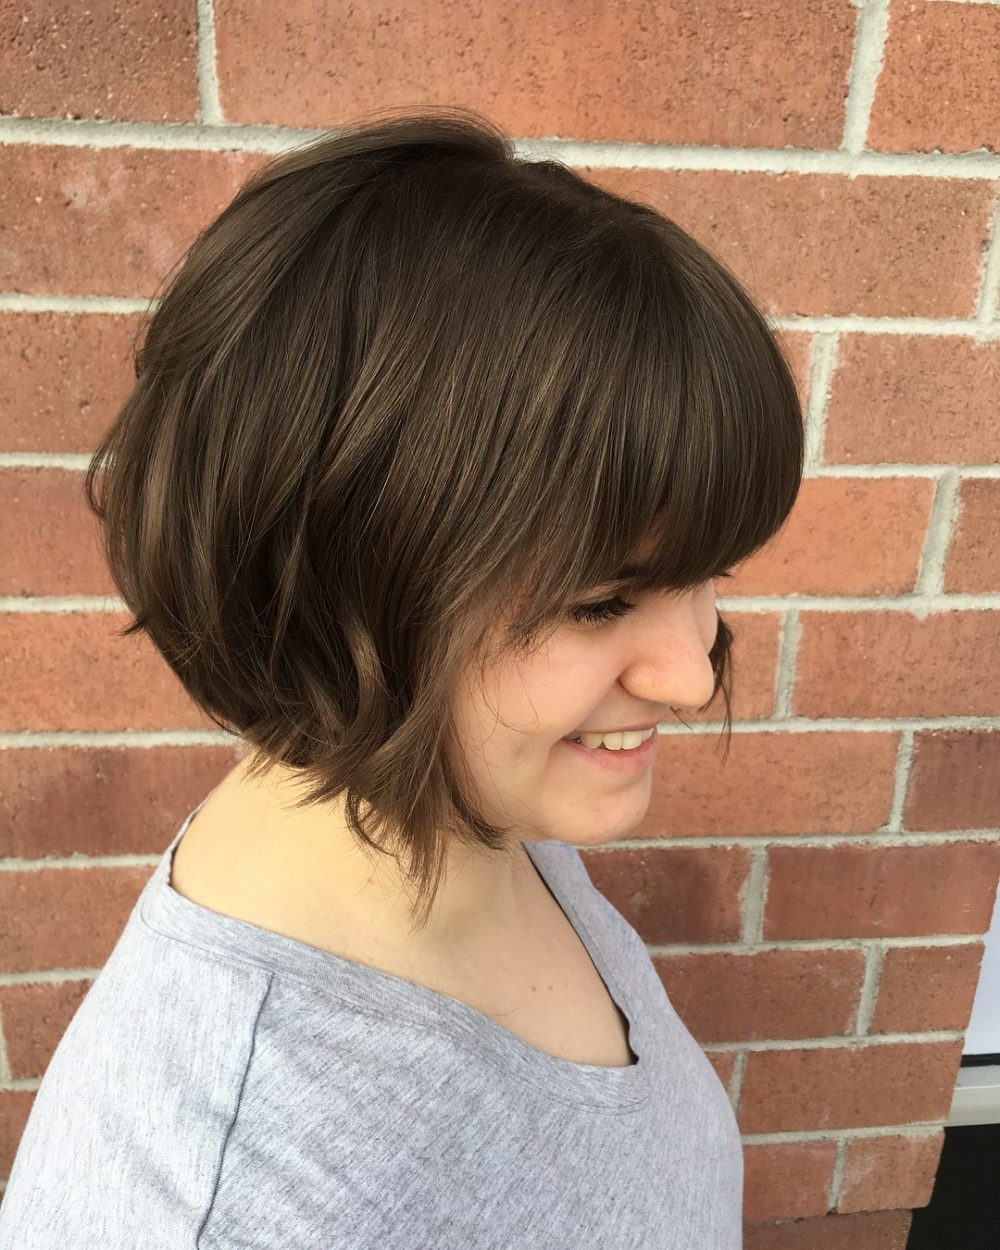 34 Greatest Short Haircuts And Hairstyles For Thick Hair For 2018 Pertaining To Short Hairstyles For Petite Faces (View 18 of 25)